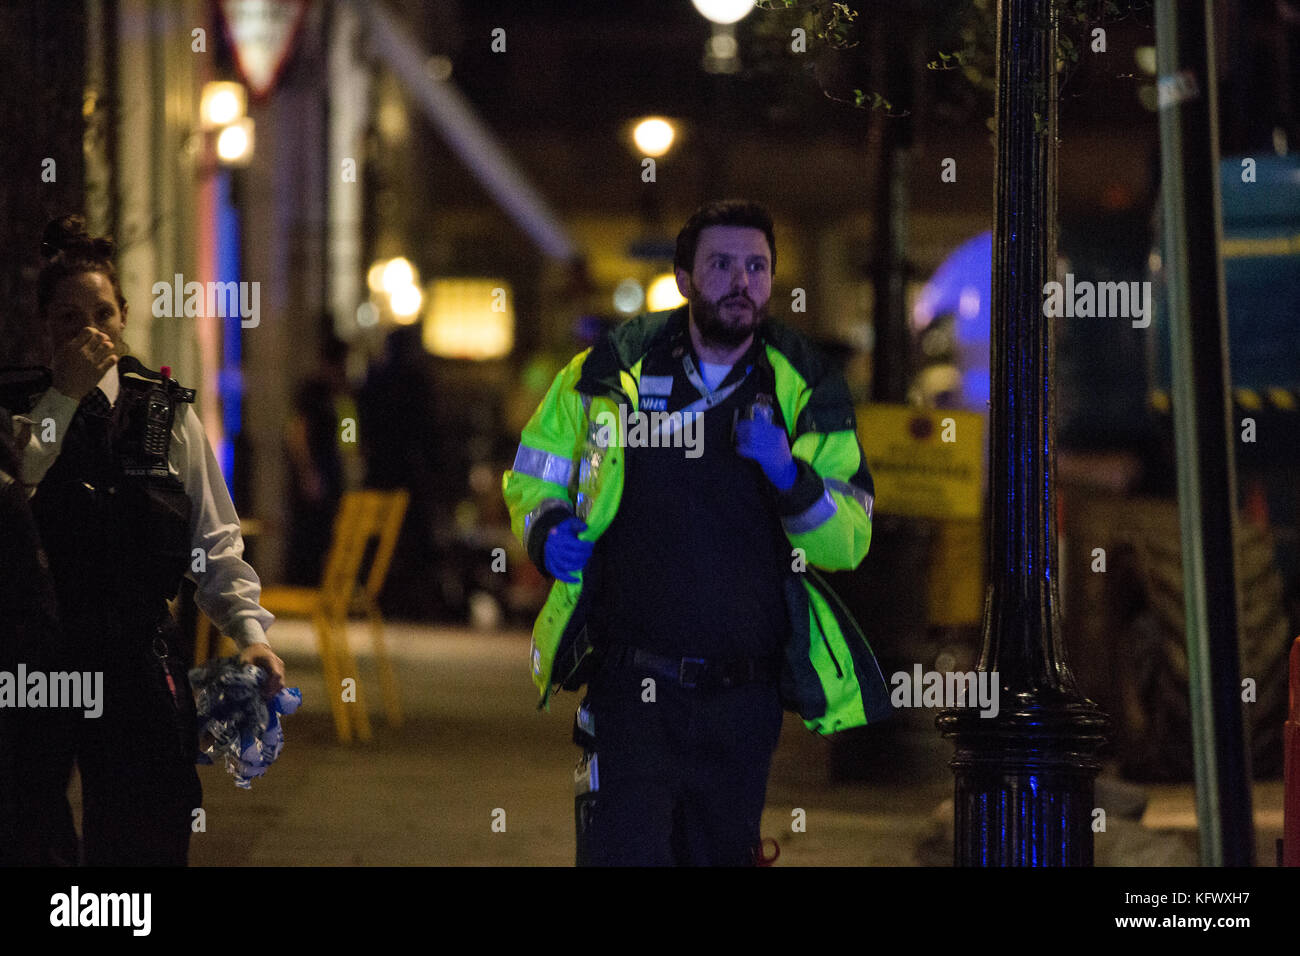 London, UK. 1st November, 2017. A medic runs in Southampton Street, Covent Garden, during a security incident. It - Stock Image